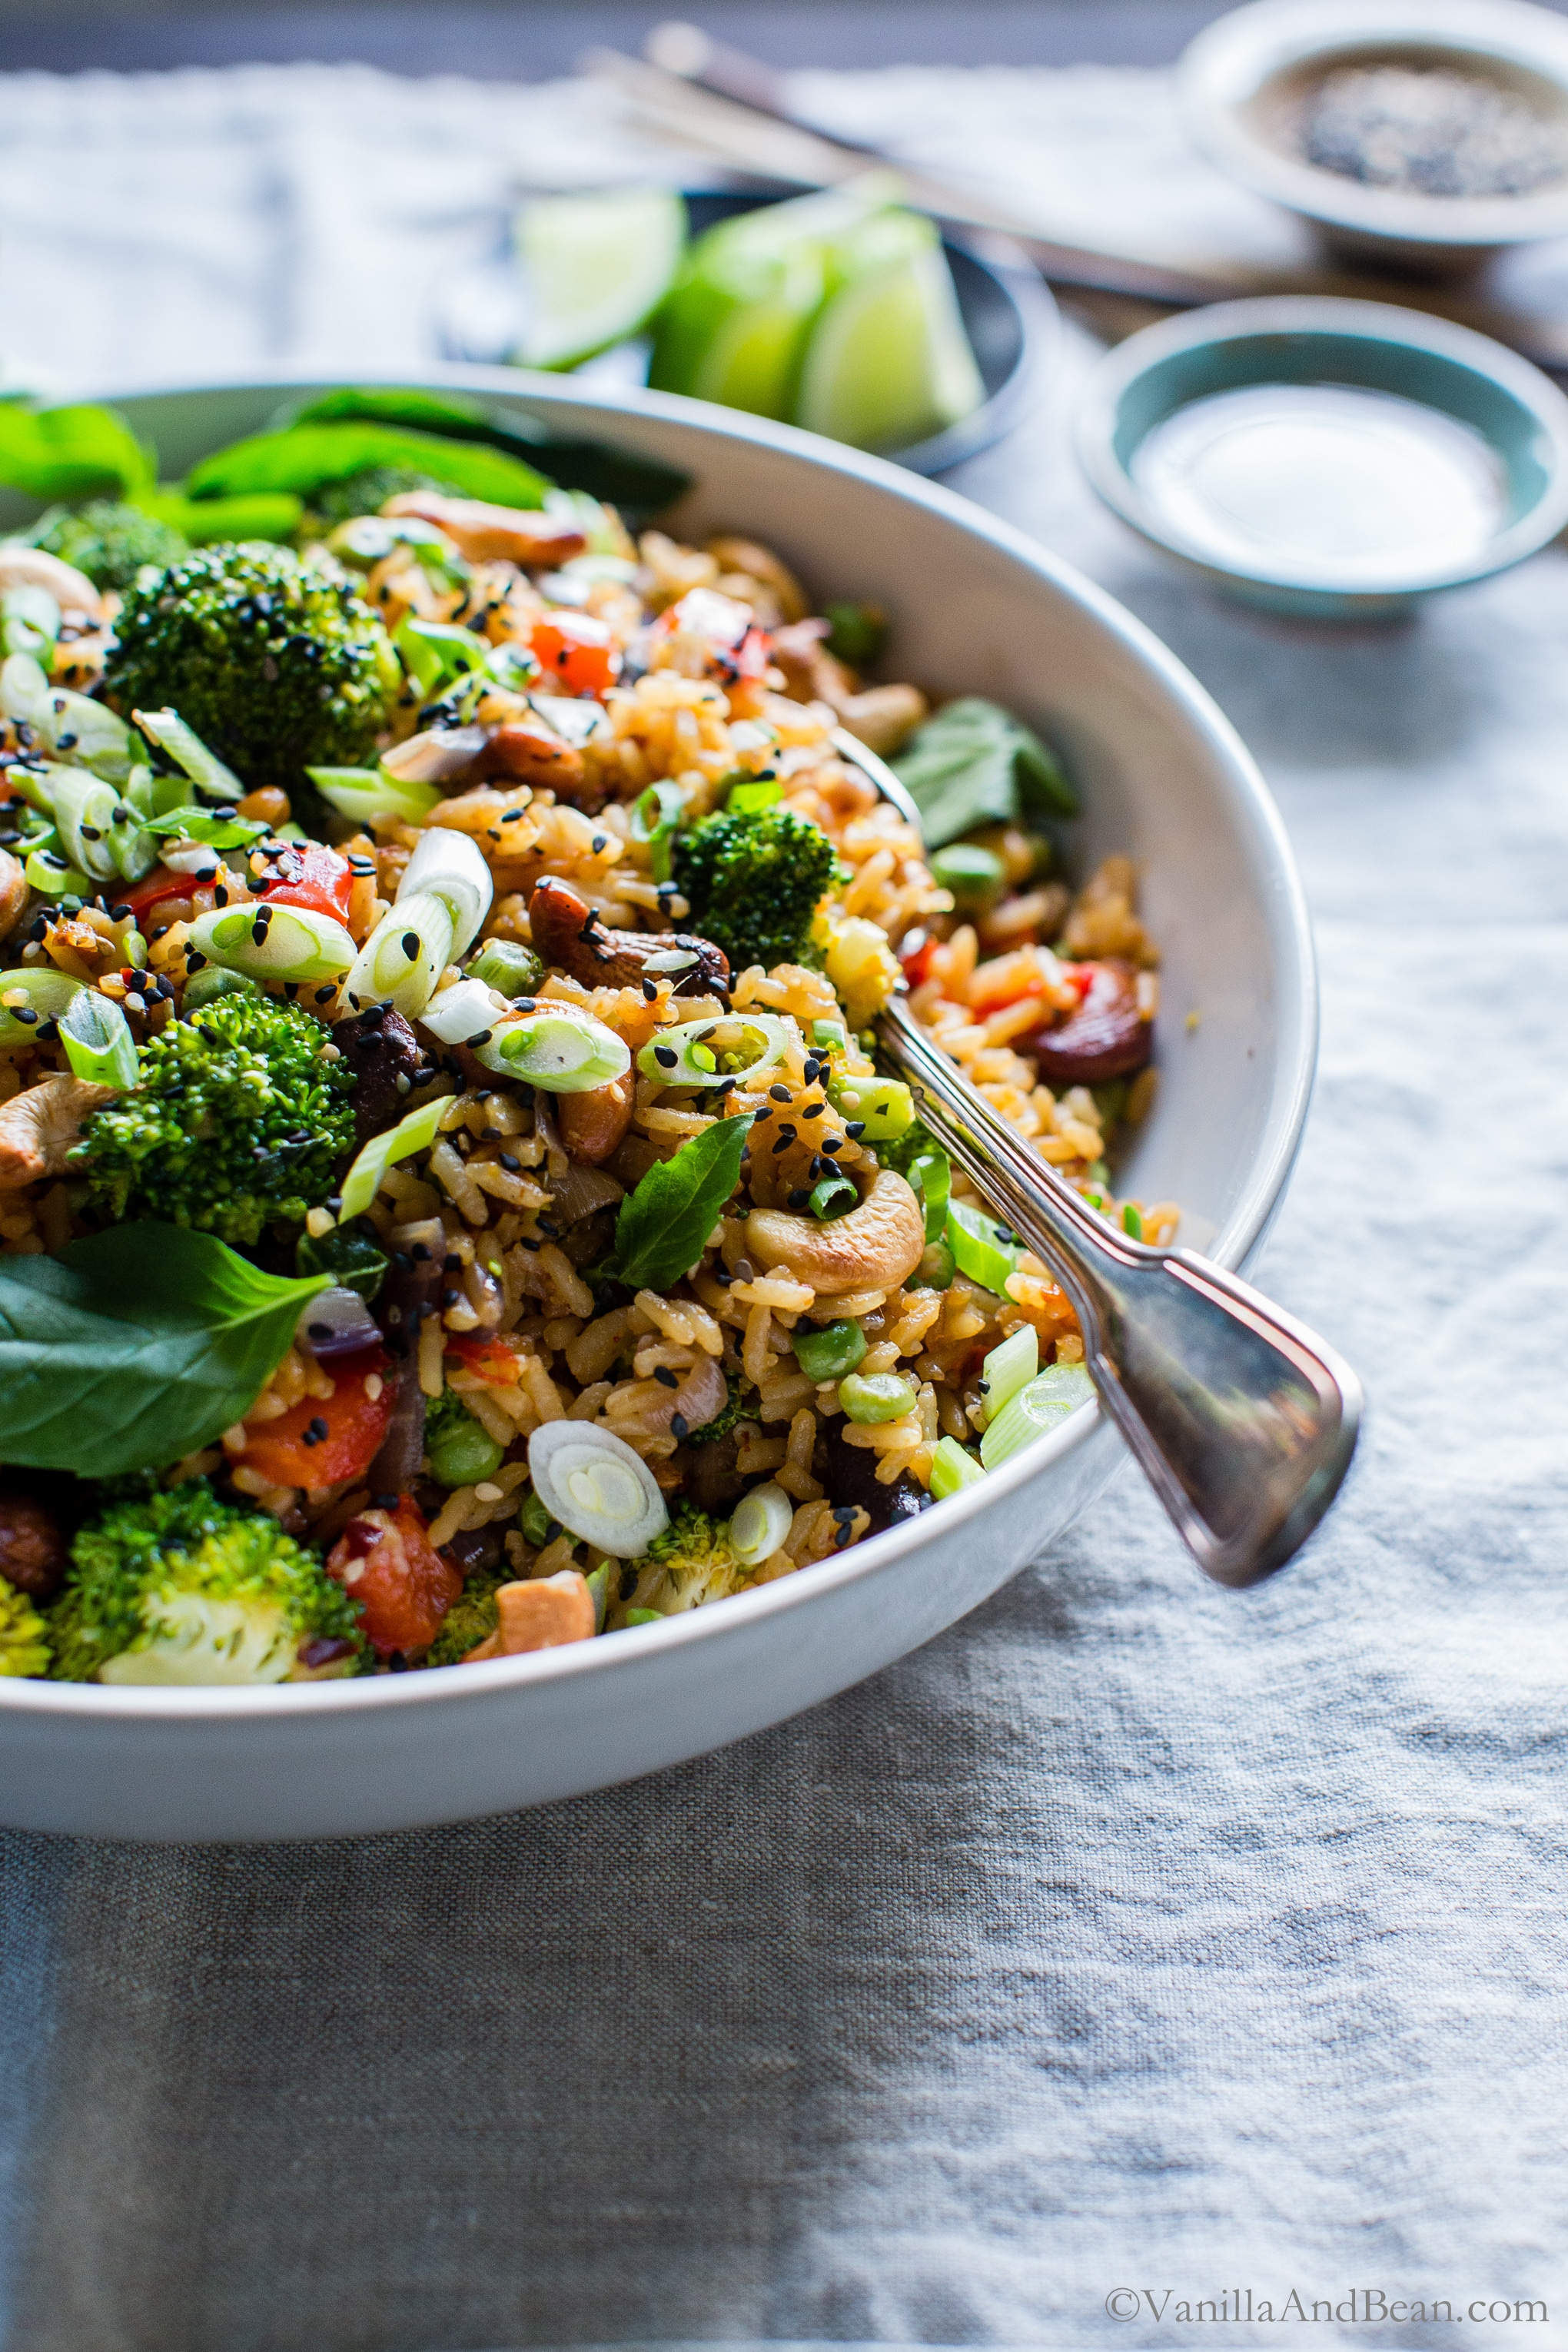 Crunchy, seasonal veggies shine in Thai Vegetable Fried Rice with Cashews. Prep ahead for meal planning and dinner comes together fast! Top with crunchy sesame seeds and green onions, for that authentic flavor. #veganRecipes #vegetarianRecipes #GlutenFree #FriedRice